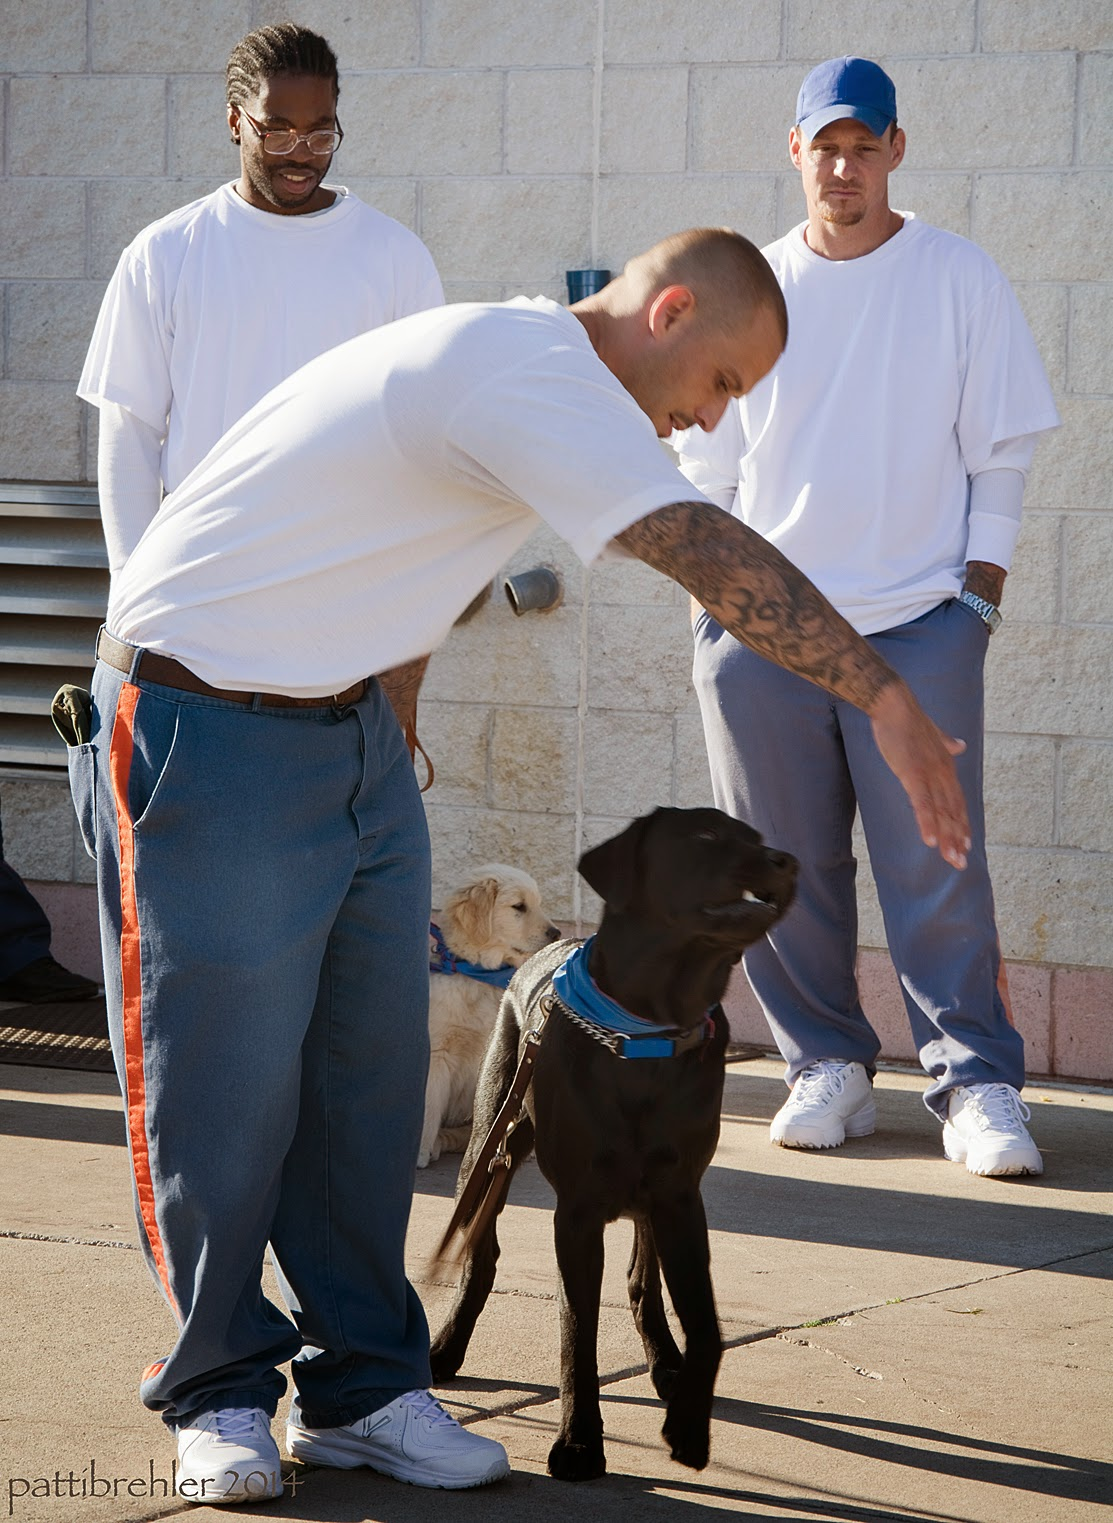 A man wearing blue prison pants with a white t-shirt is leaning forward with his right arm stretched out in front of a black lab's nose. The man is looking down at the dog. The lab is standing at the man's left side and is looking at the man's open right palm. The lab is wearing the blue Future Leader Dog bandana. There are two other men standing behind the first man watching the man and dog. They are wearing blue prison pants and white t-shirts. The man on the left is african american and is wearing glasses, the man on the right is wearing a blue baseballc am and has his hands in his pickets. The are outside in bright sunlight, casting long shadows to the right, and in front of a white brick wall.